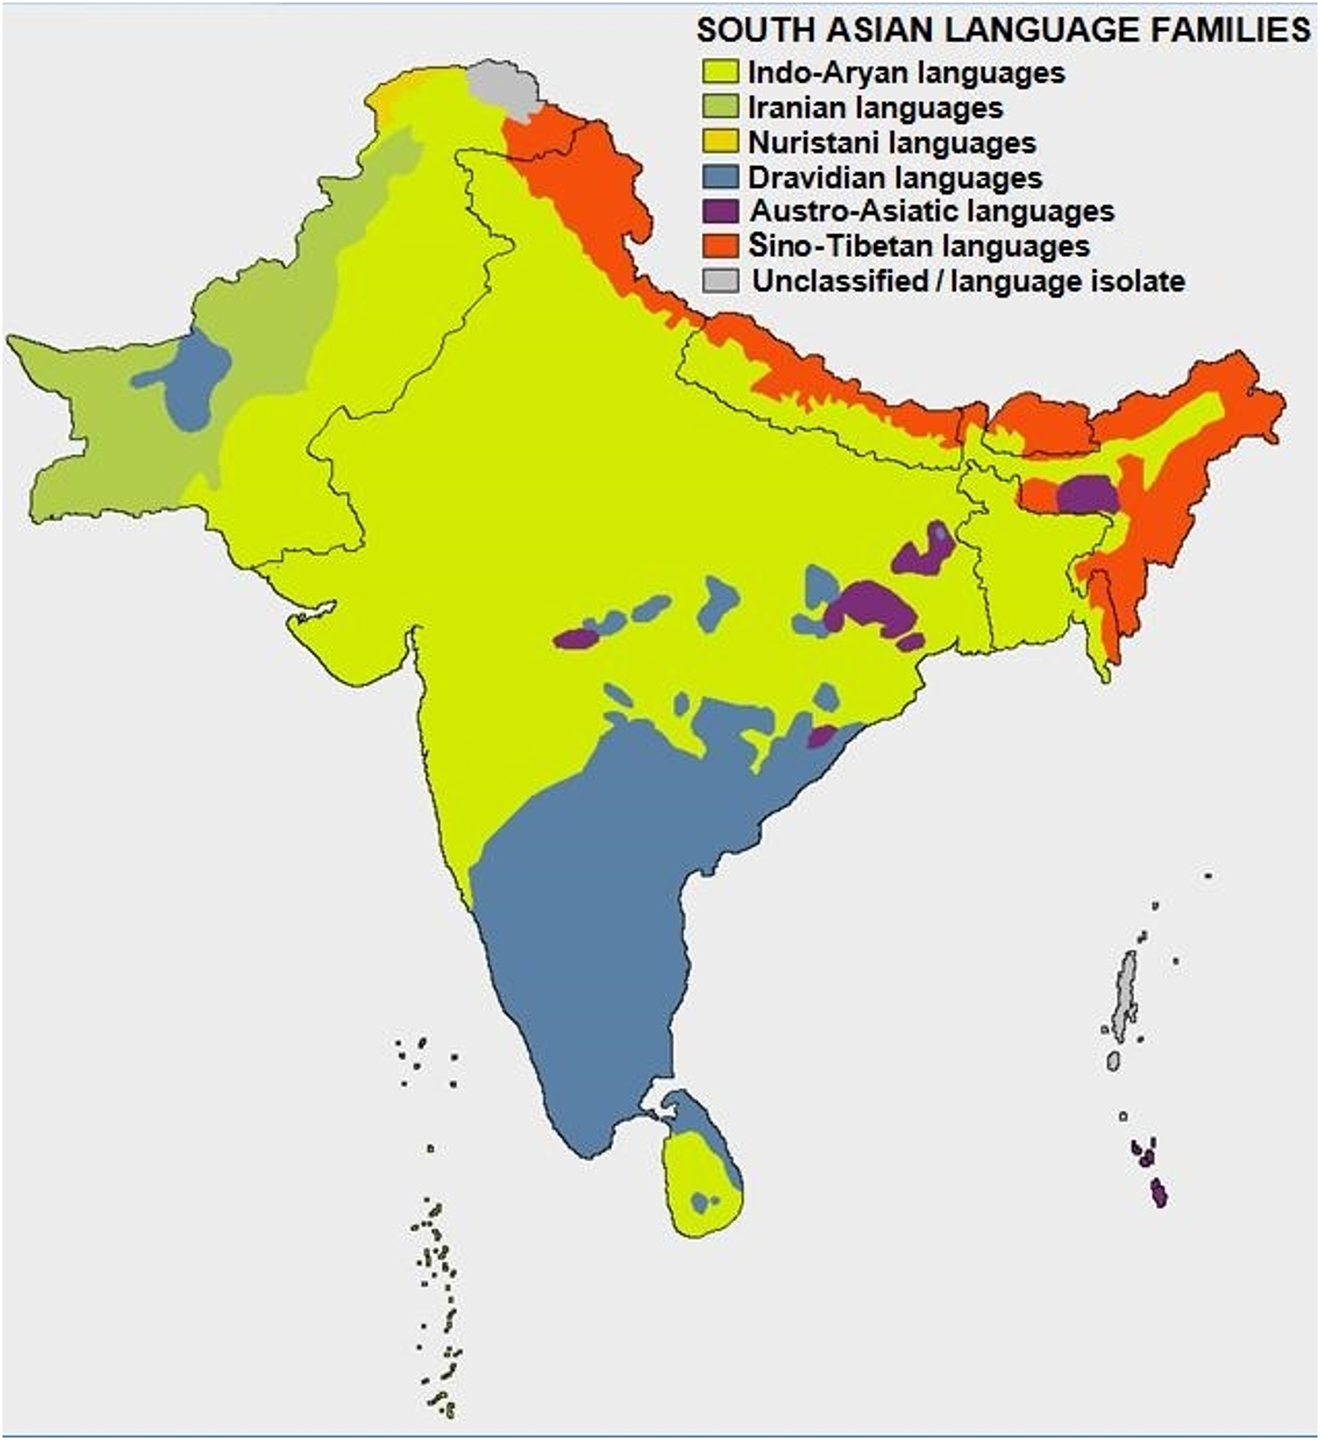 A bird's eye view on South Asian languages through LSI